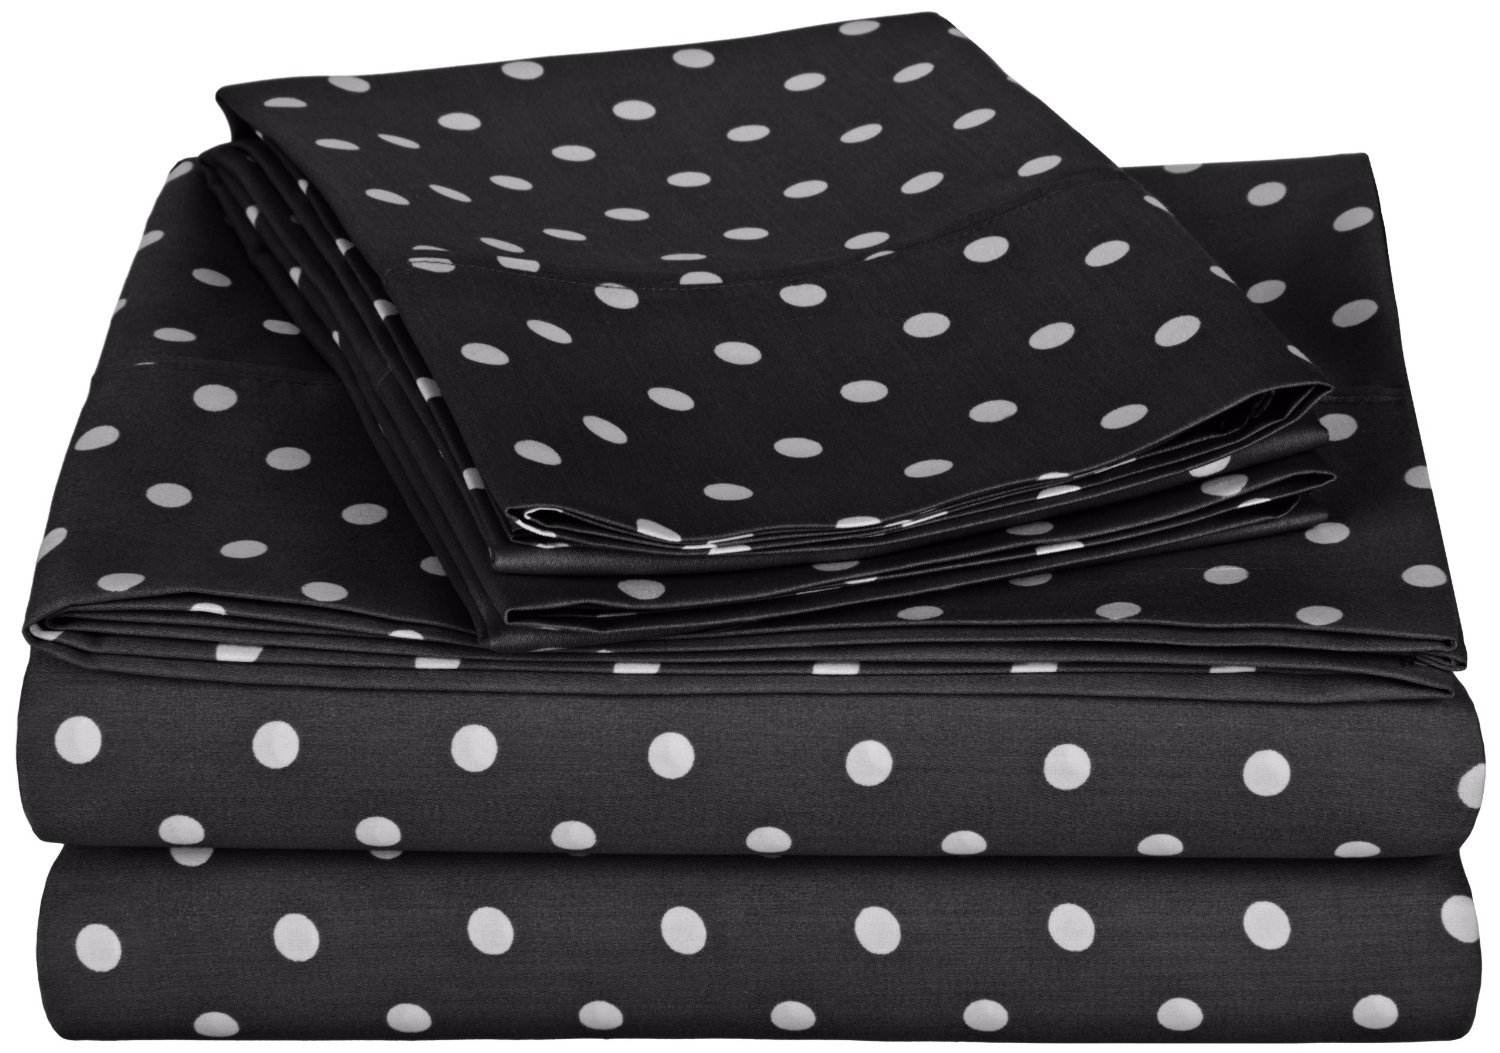 Black Twin XL Superior Polka Dot Sheet Set, 600 Thread Count Cotton Blend Bedding Sets, Soft and Wrinkle Resistant Sheets with Deep Fitting Pockets - Queen, Grey